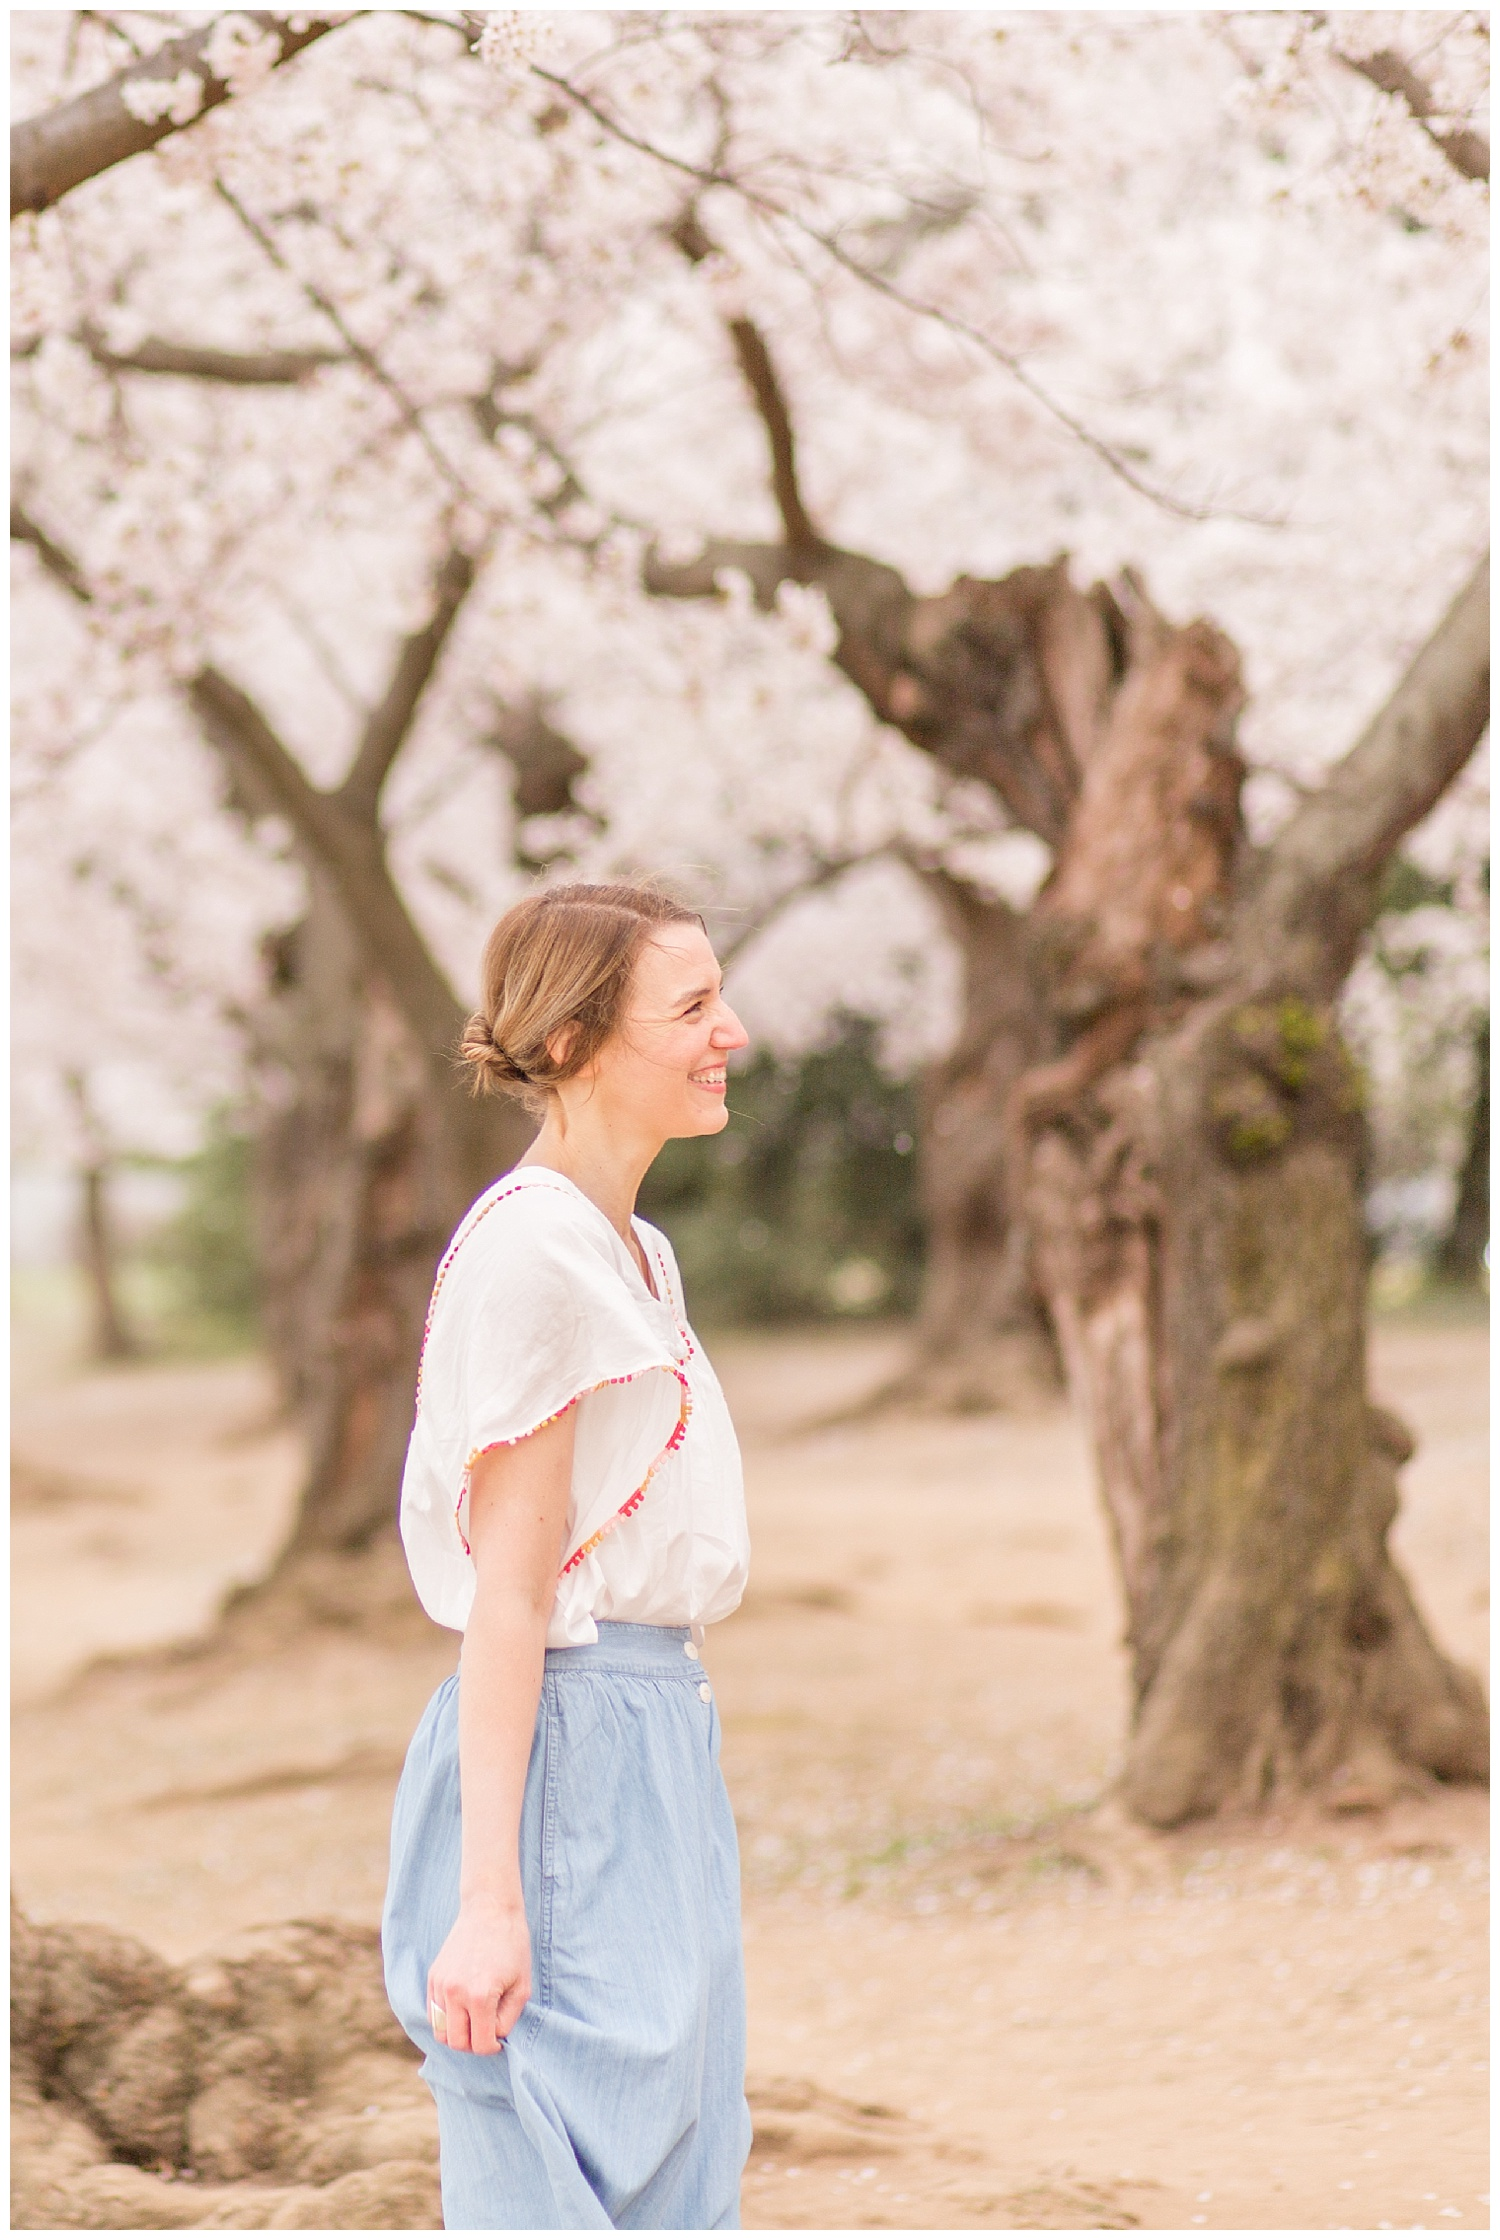 emily-belson-photography-cherry-blossom-dc-jessica-08.jpg